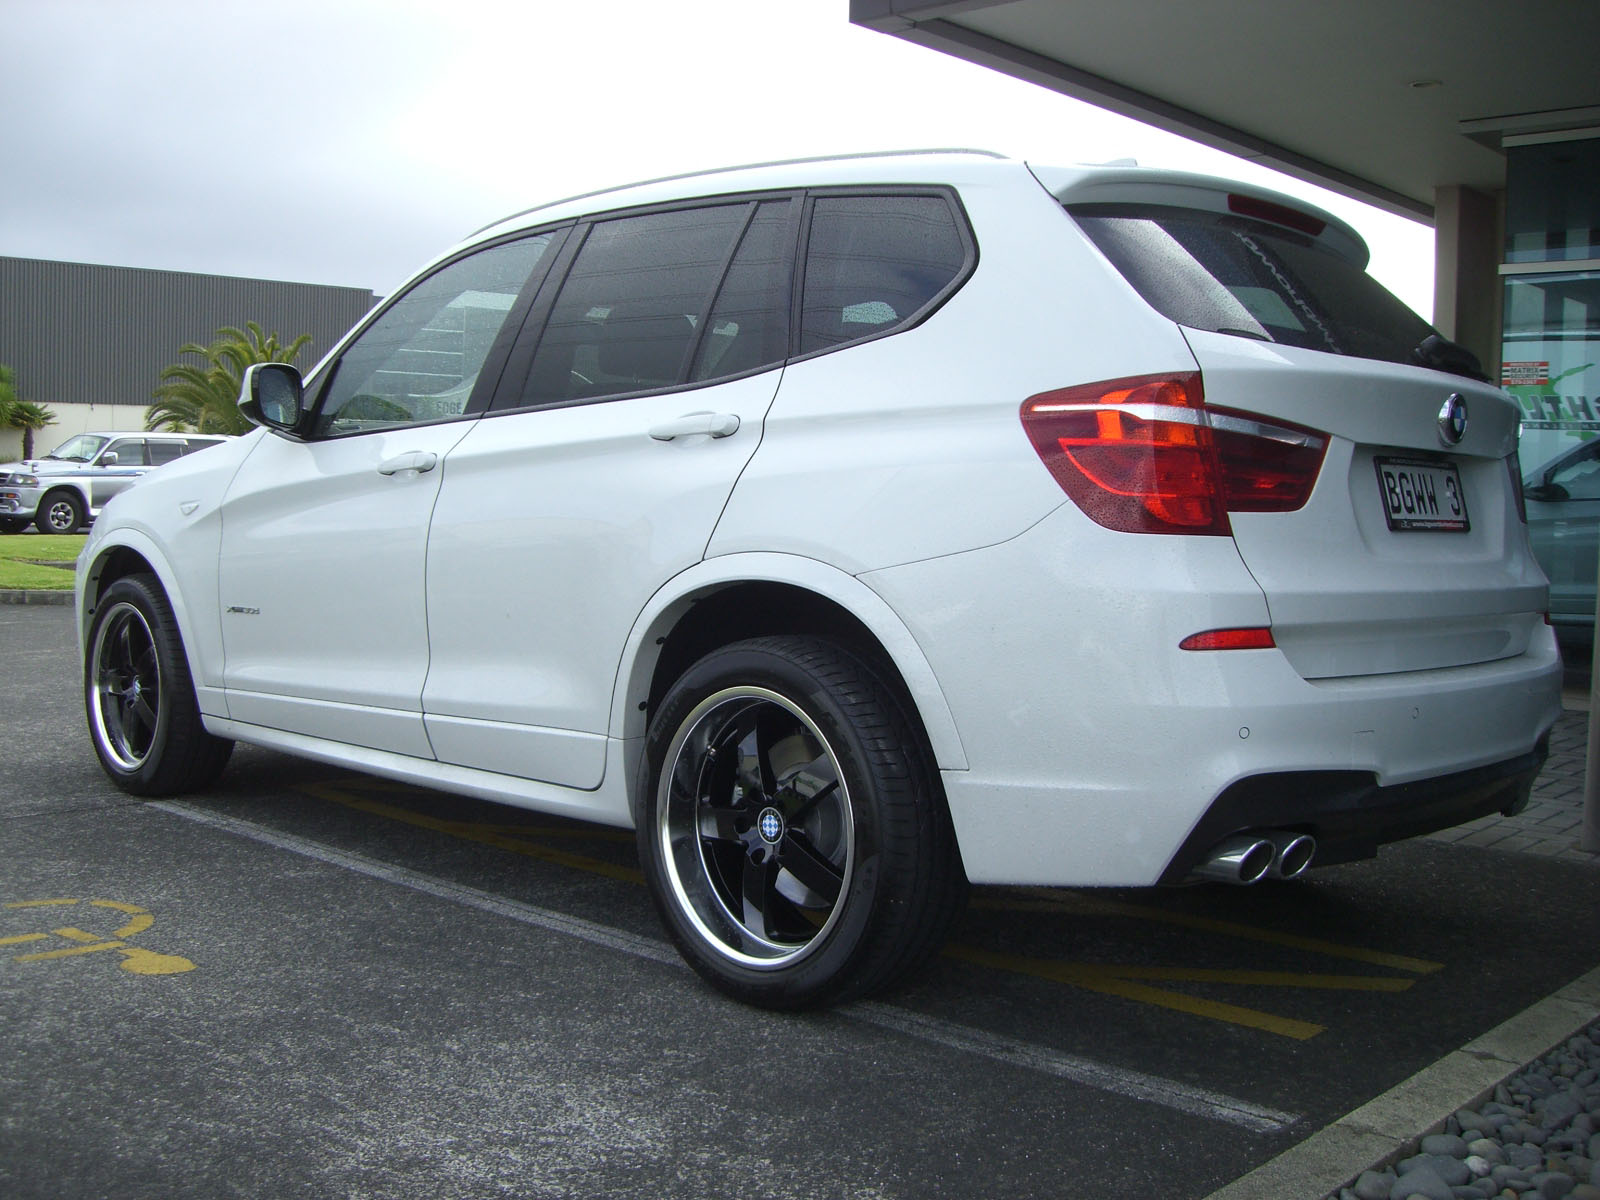 BMW X3 on Beyern Rapp